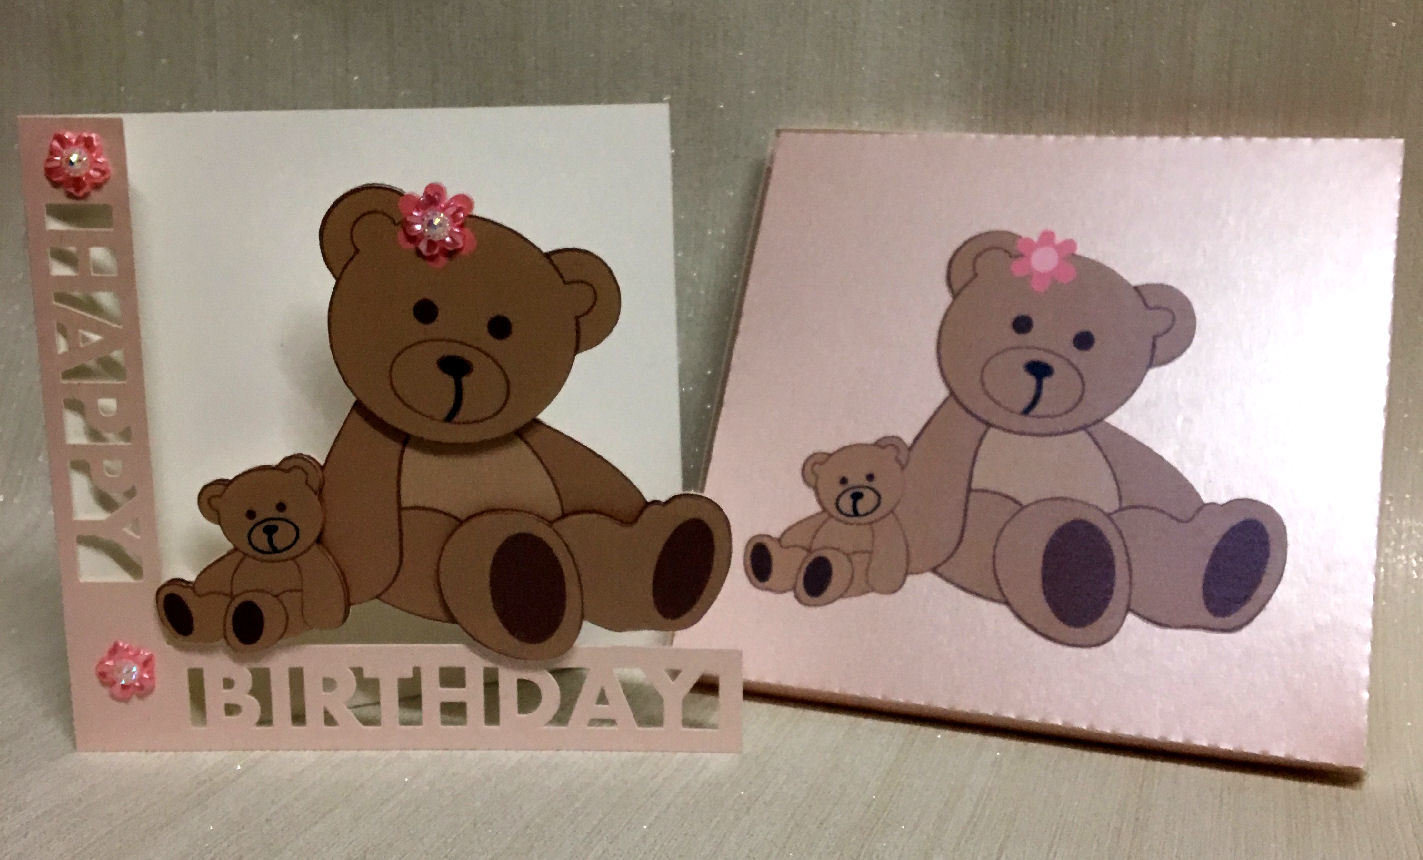 Shaped  Birthday Card with Teddy detail and card box  - studio format